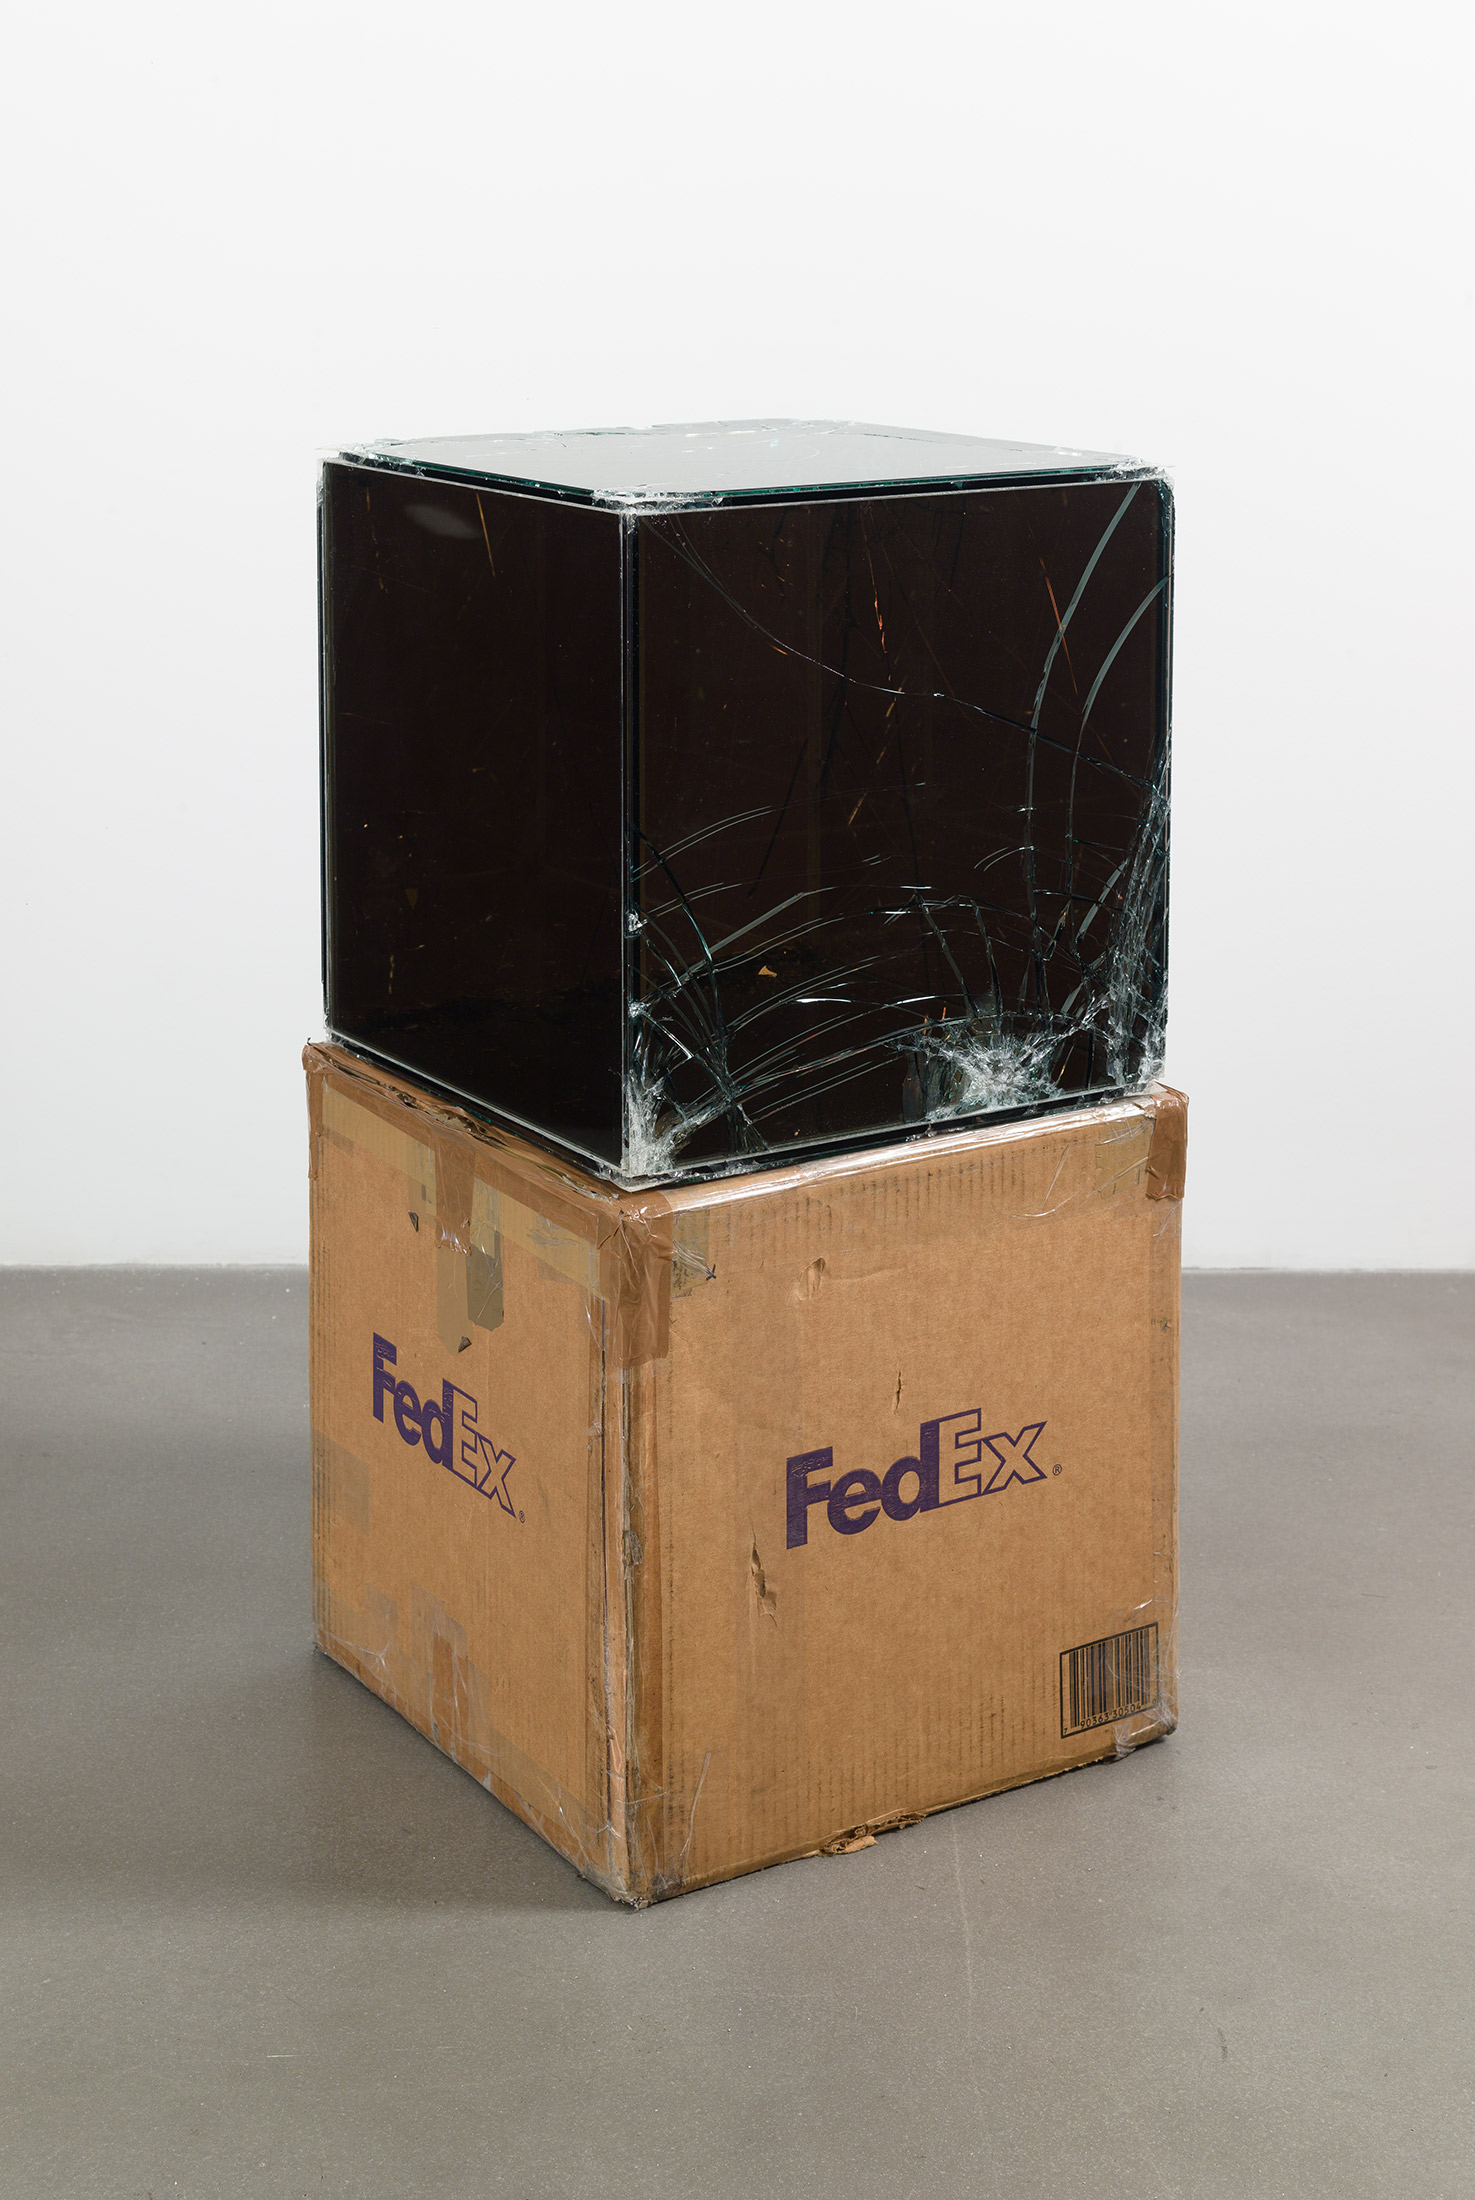 FedEx® Kraft Box  © 2005 FEDEX 330504 10/05 SSCC, Priority Overnight, Los Angeles–Miami trk#865344981358, October 29–30, 2008, Priority Overnight, Miami–Ann Arbor trk#861049125126, March 3–4, 2009, Standard Overnight, Ann Arbor–Los Angeles trk#868274625760, July 9–10, 2009, Standard Overnight, Los Angeles–New York trk#774901687401, November 4–5, 2015, Standard Overnight, New York–Los Angeles trk#775241470240, December 21–22, 2015    2008–   Laminated Mirropane, FedEx shipping box, accrued FedEx shipping and tracking labels, silicone, metal, tape  16 x 16 x 16 inches   FedEx Glass Works, 2007–